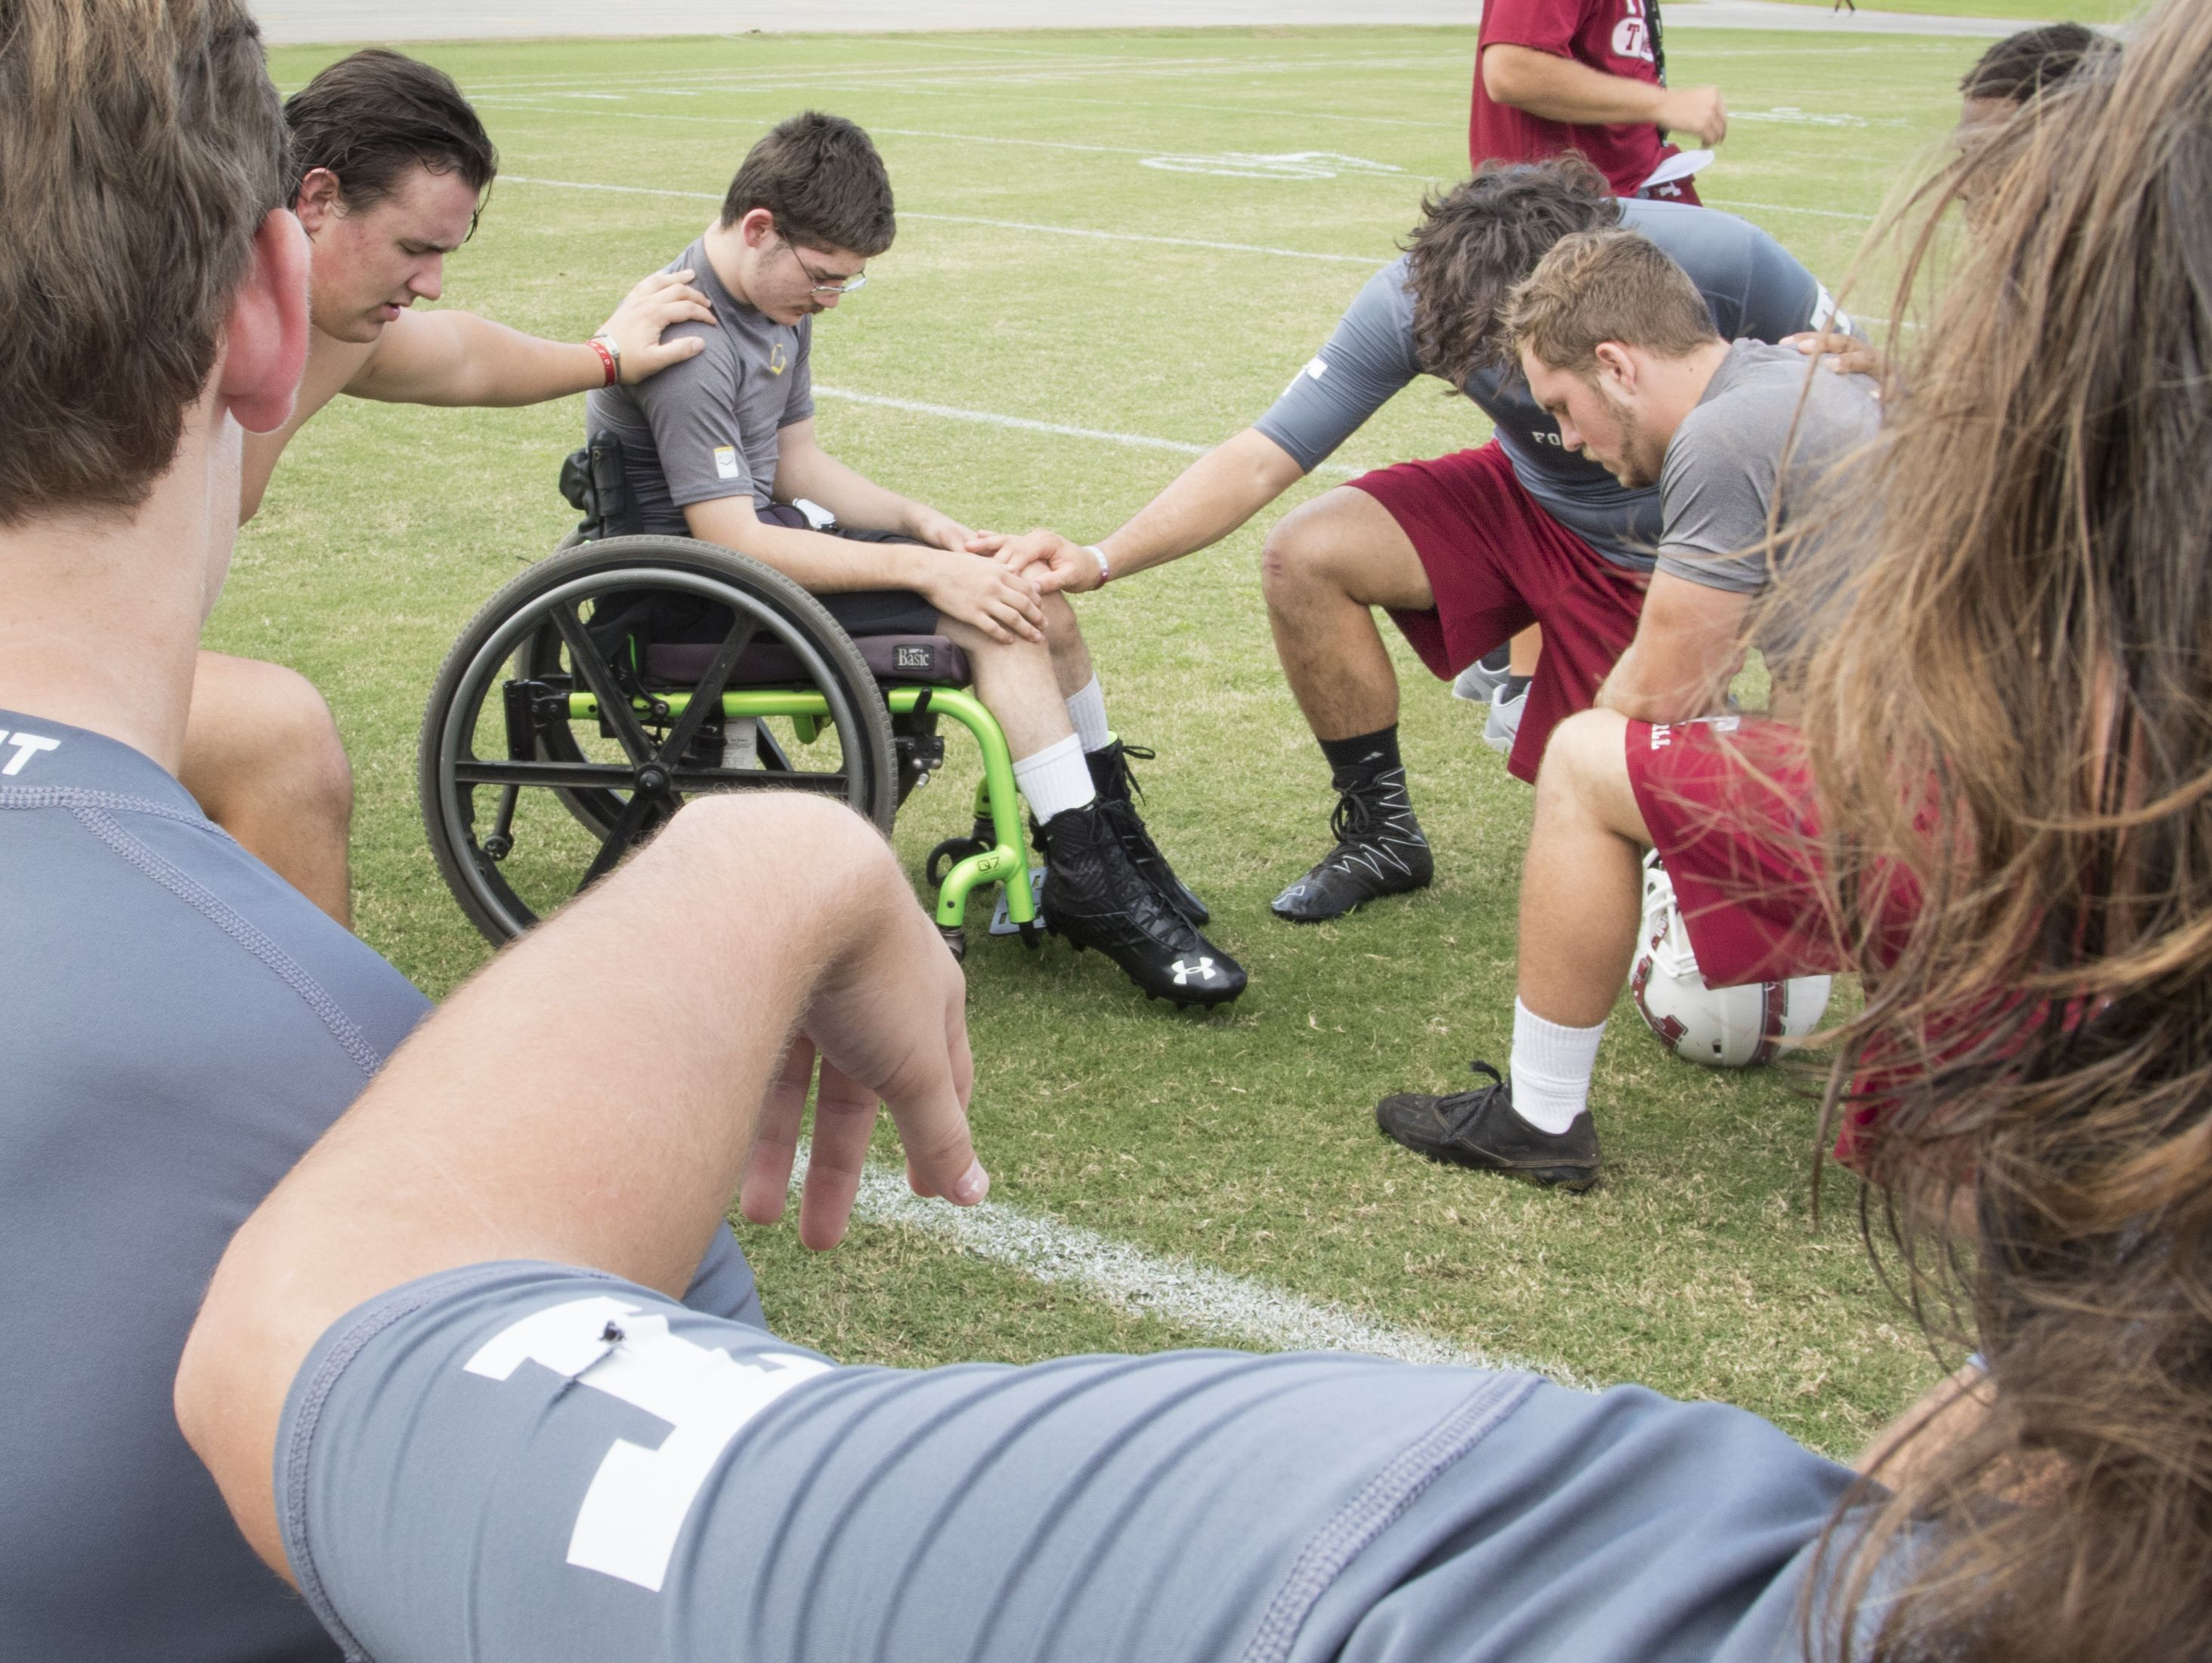 Markus Baxley, a student with cerebral palsy, joins his teammates in a prayer following football practice at Tate High School in Pensacola on Thursday, October 6, 2016. Baxley will fulfill a lifelong dream when he participates in one play in the Friday night game against Pace High School.